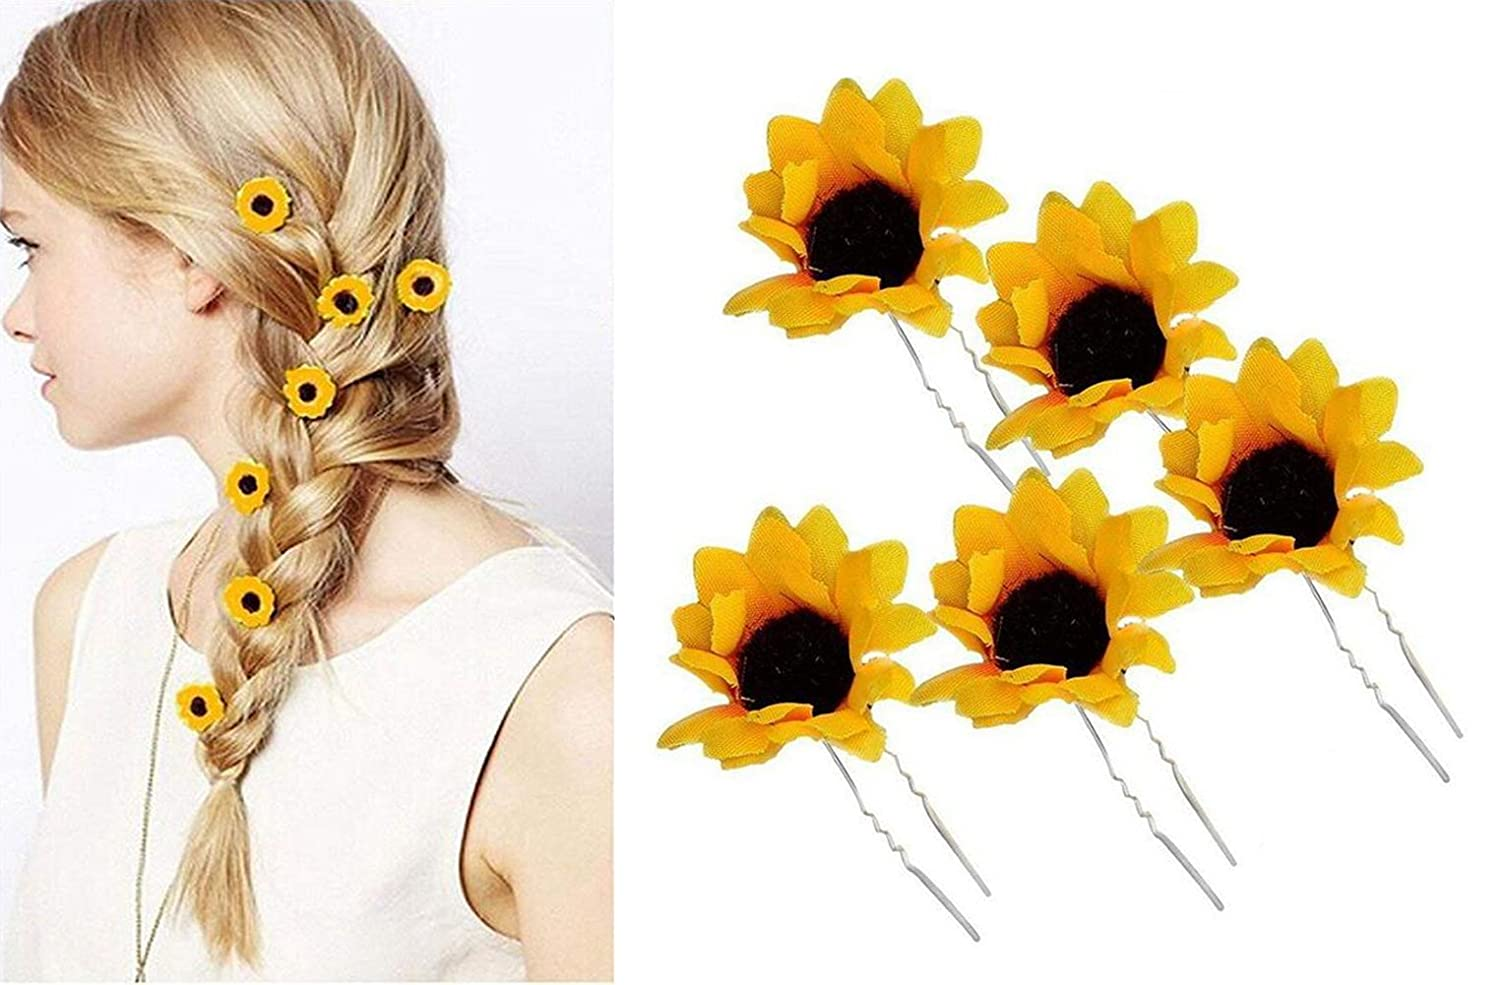 10PCS Good-looking Daisy Sunflower U-shaped Hairpins Hair Clips Hair Clamp Hair Clasp Headpiece Decoration for Wedding Bridal Holiday Beach Party Women Lady Girls(Yellow)